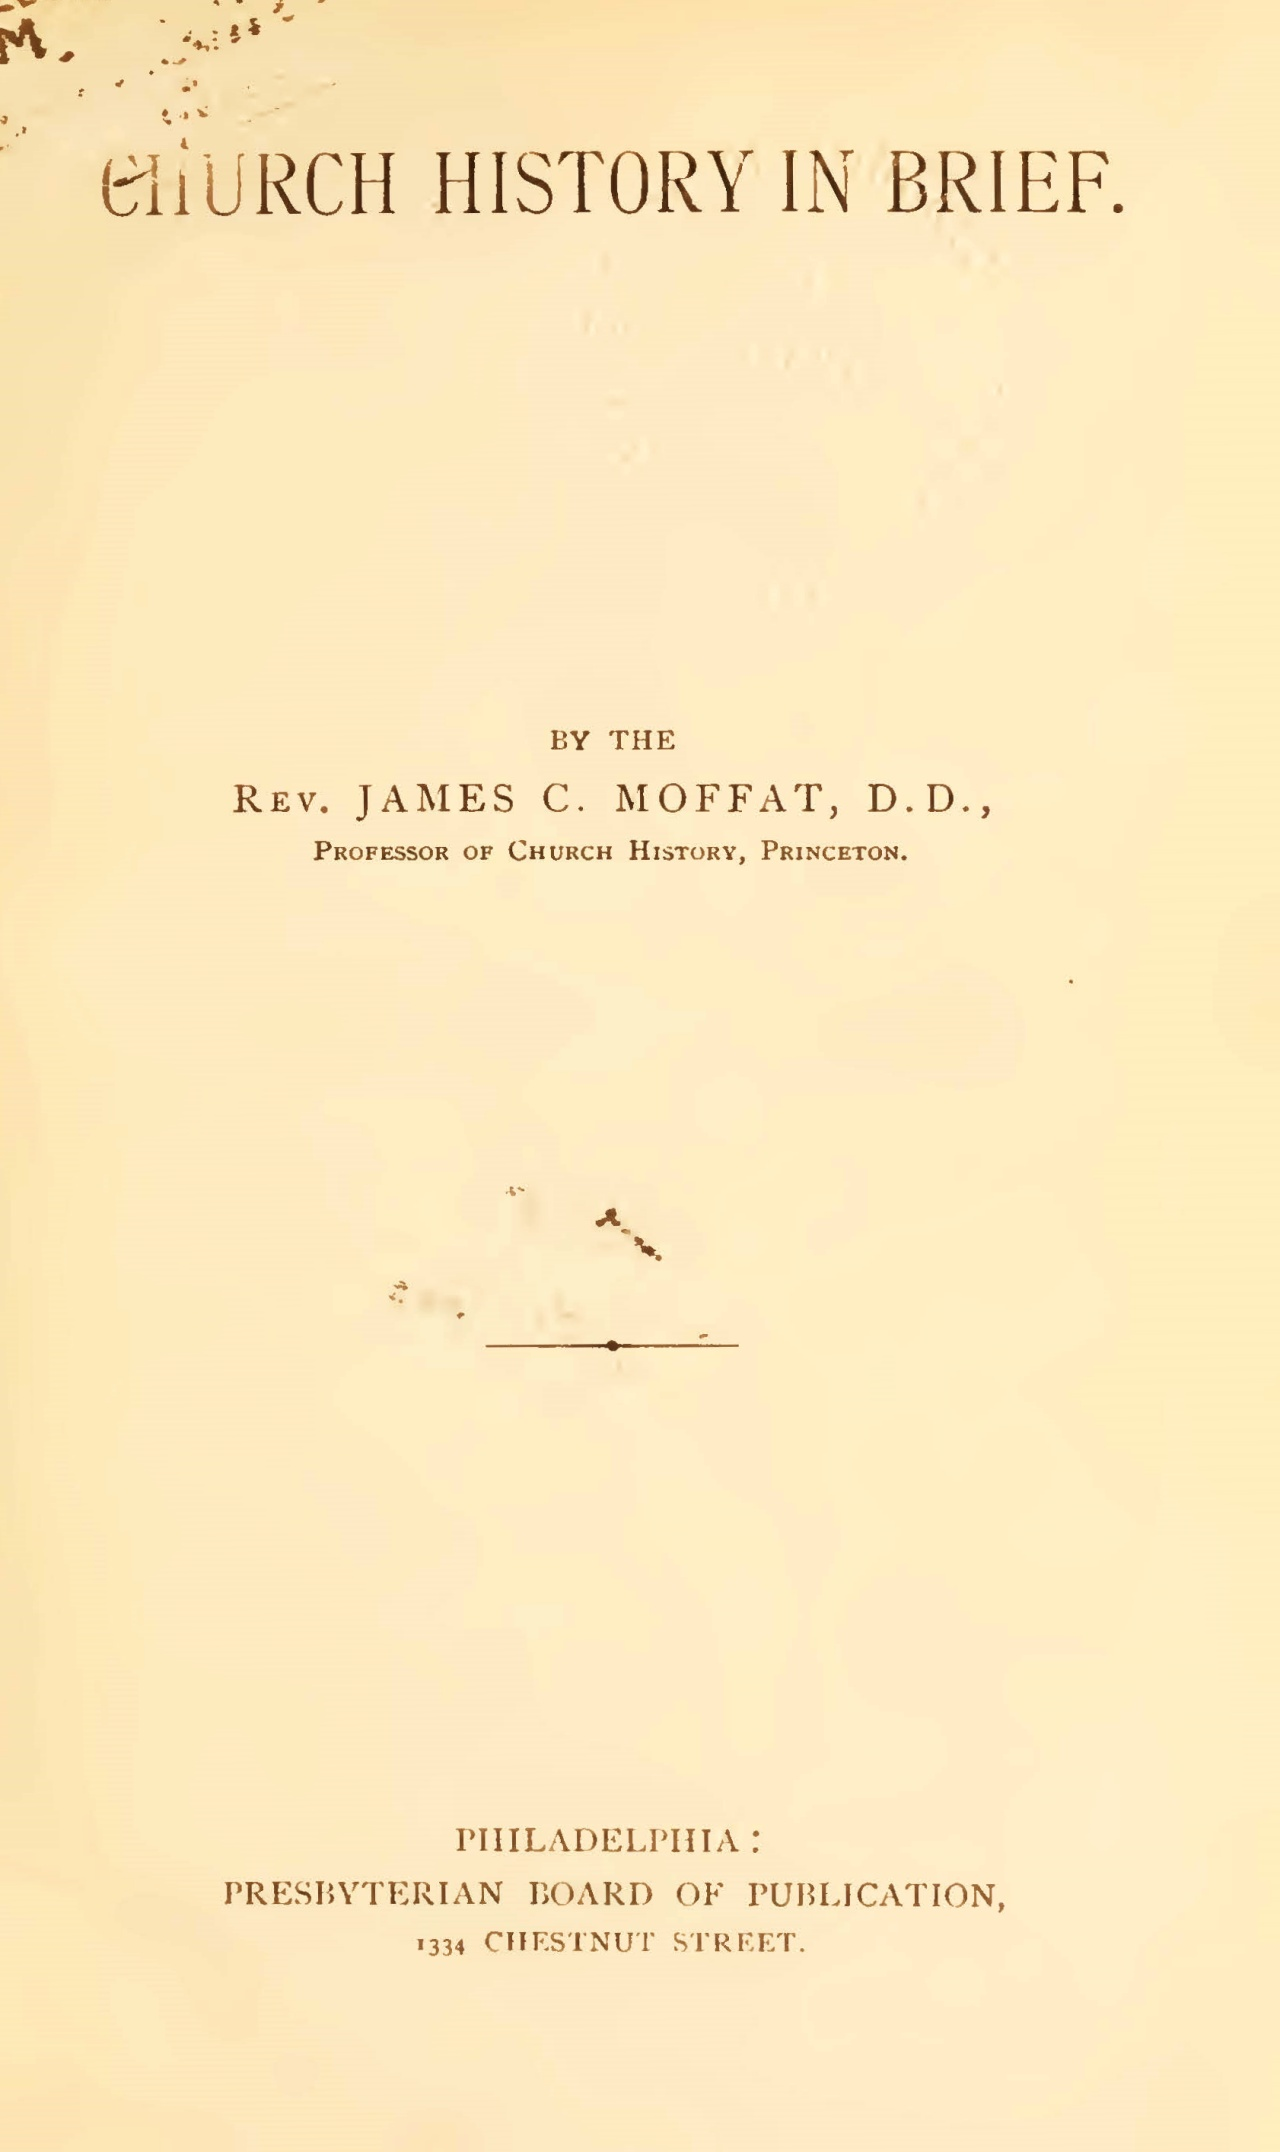 Moffat, James Clement, Church History in Brief Title Page.jpg